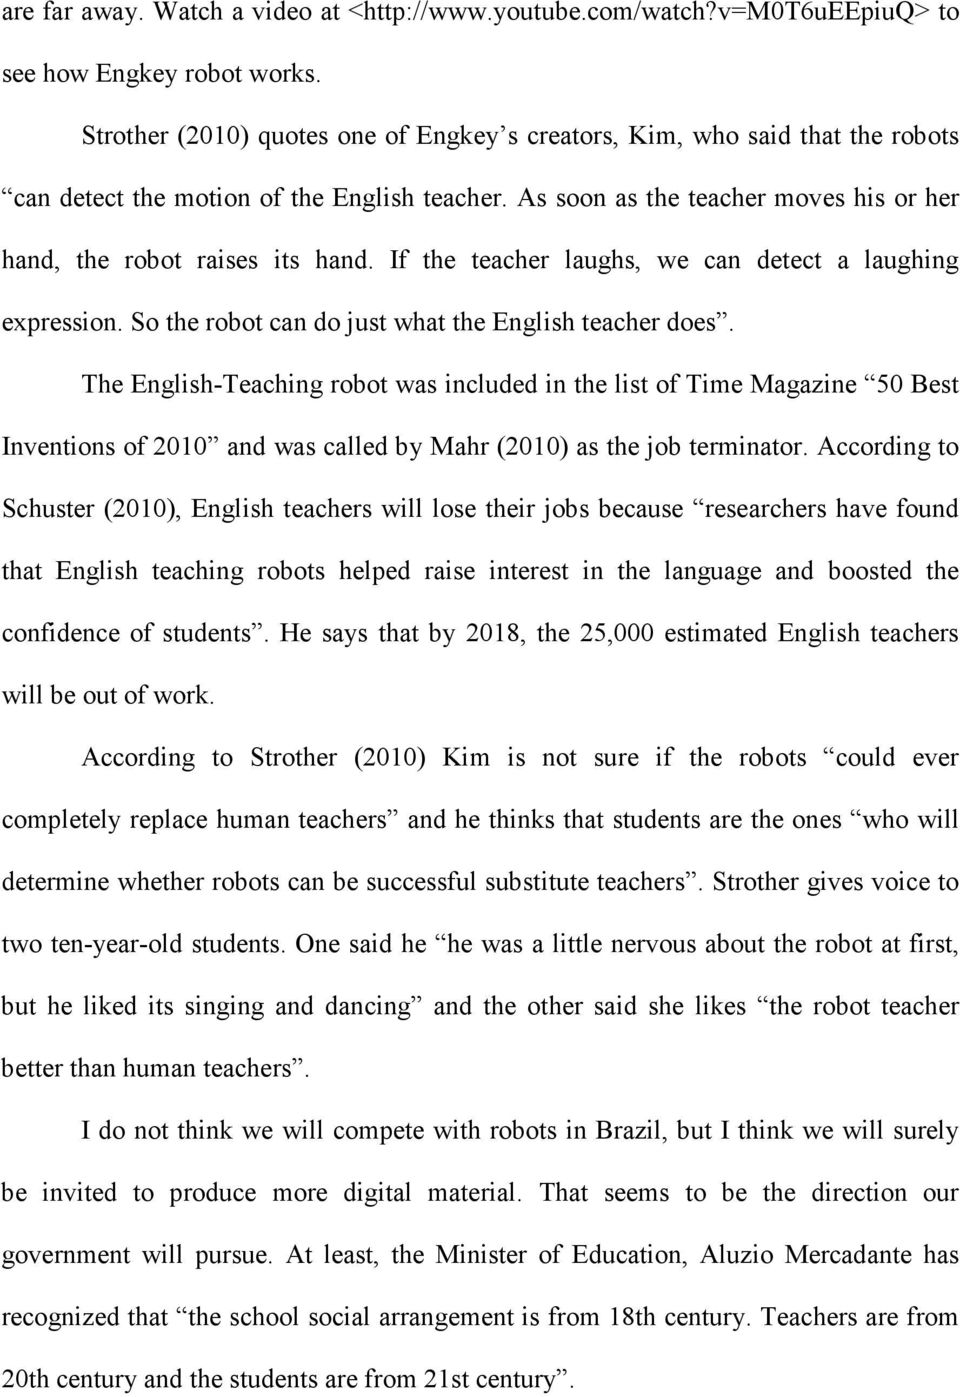 If the teacher laughs, we can detect a laughing expression. So the robot can do just what the English teacher does.